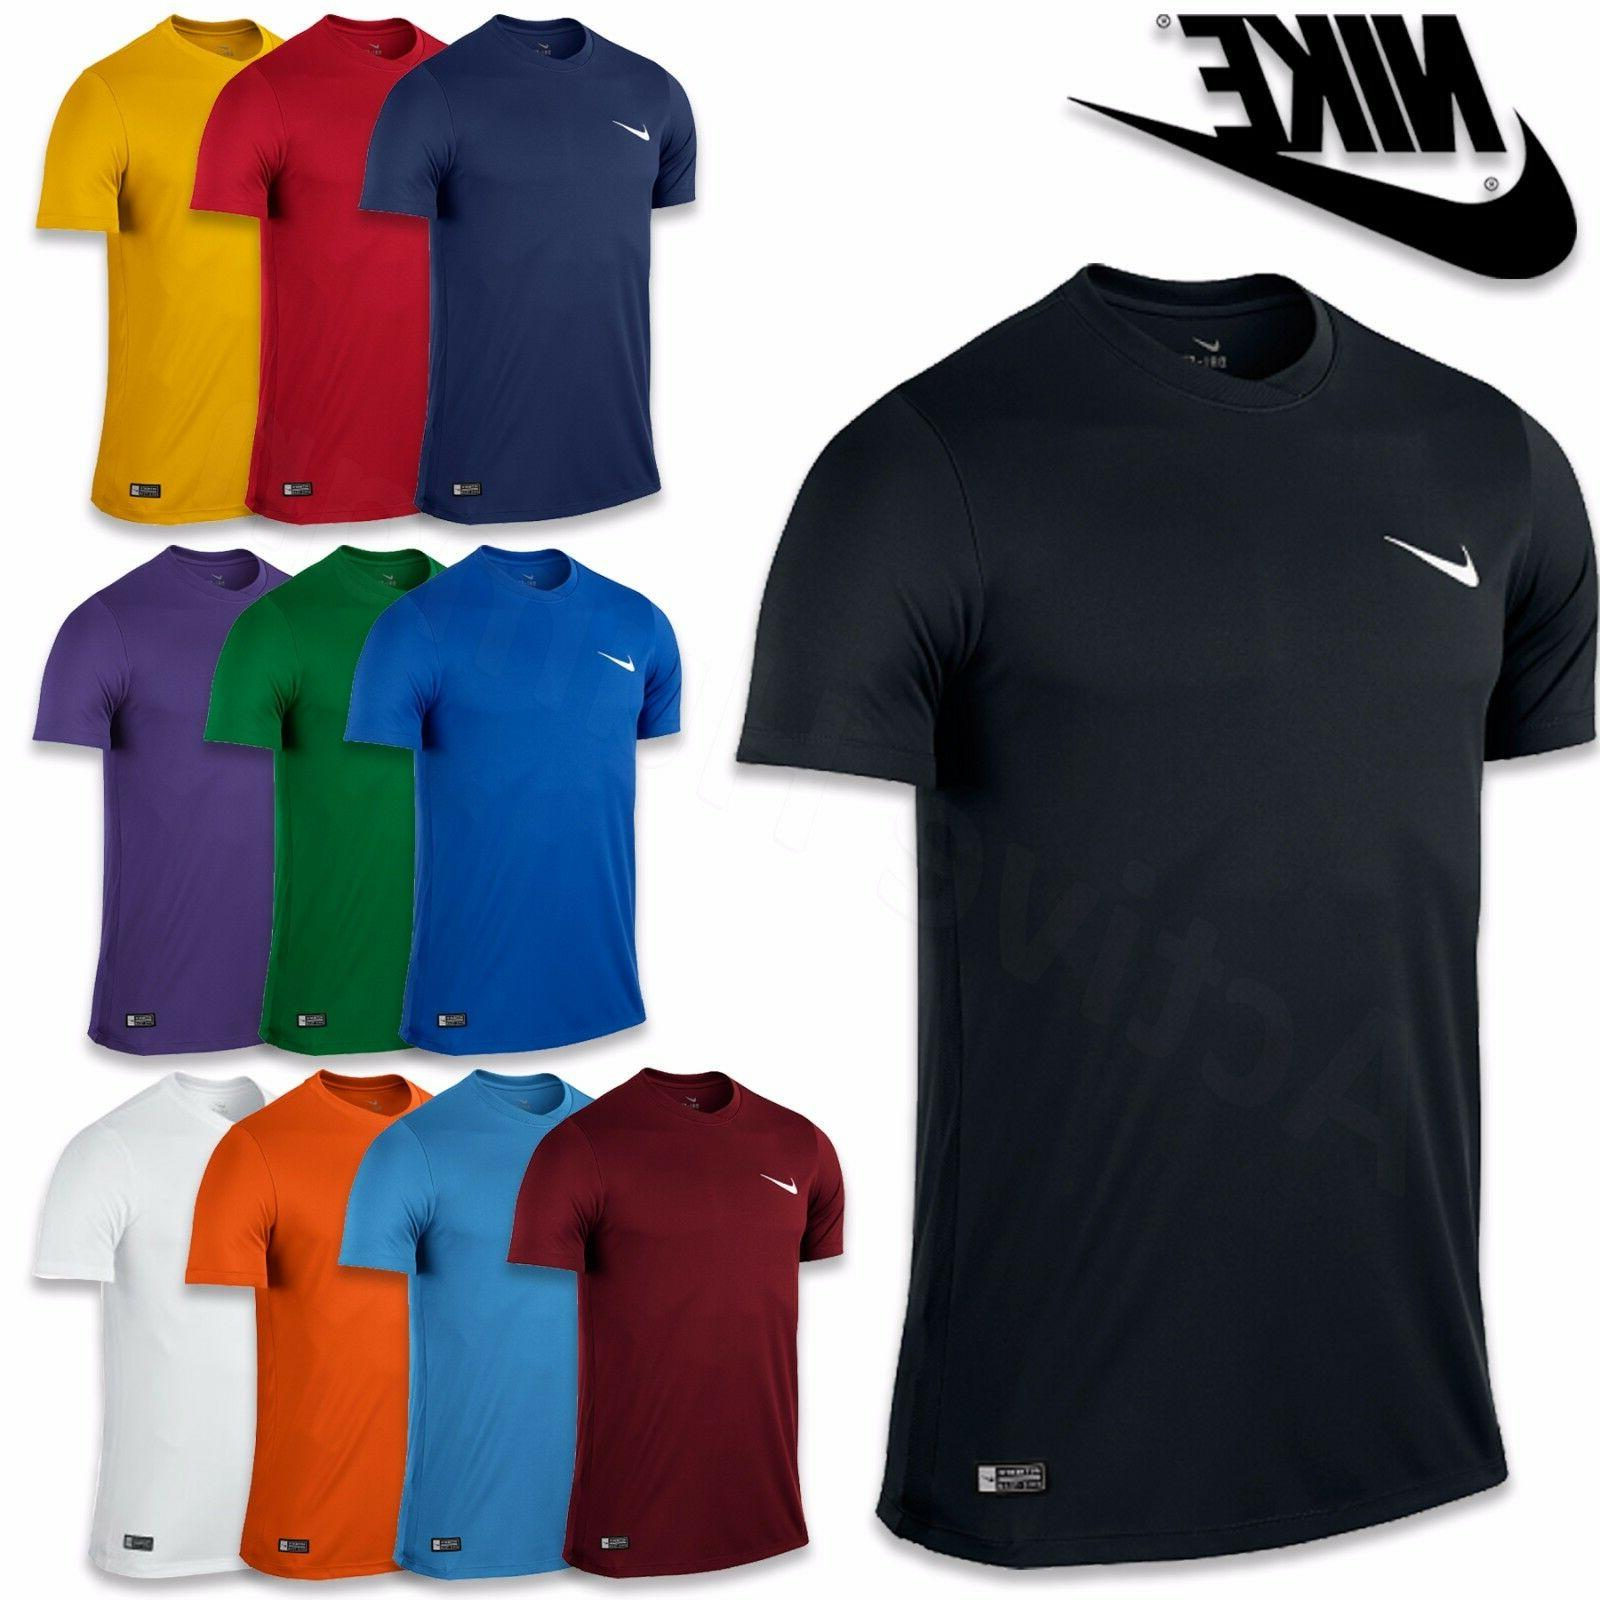 new mens gym sports tee t shirt